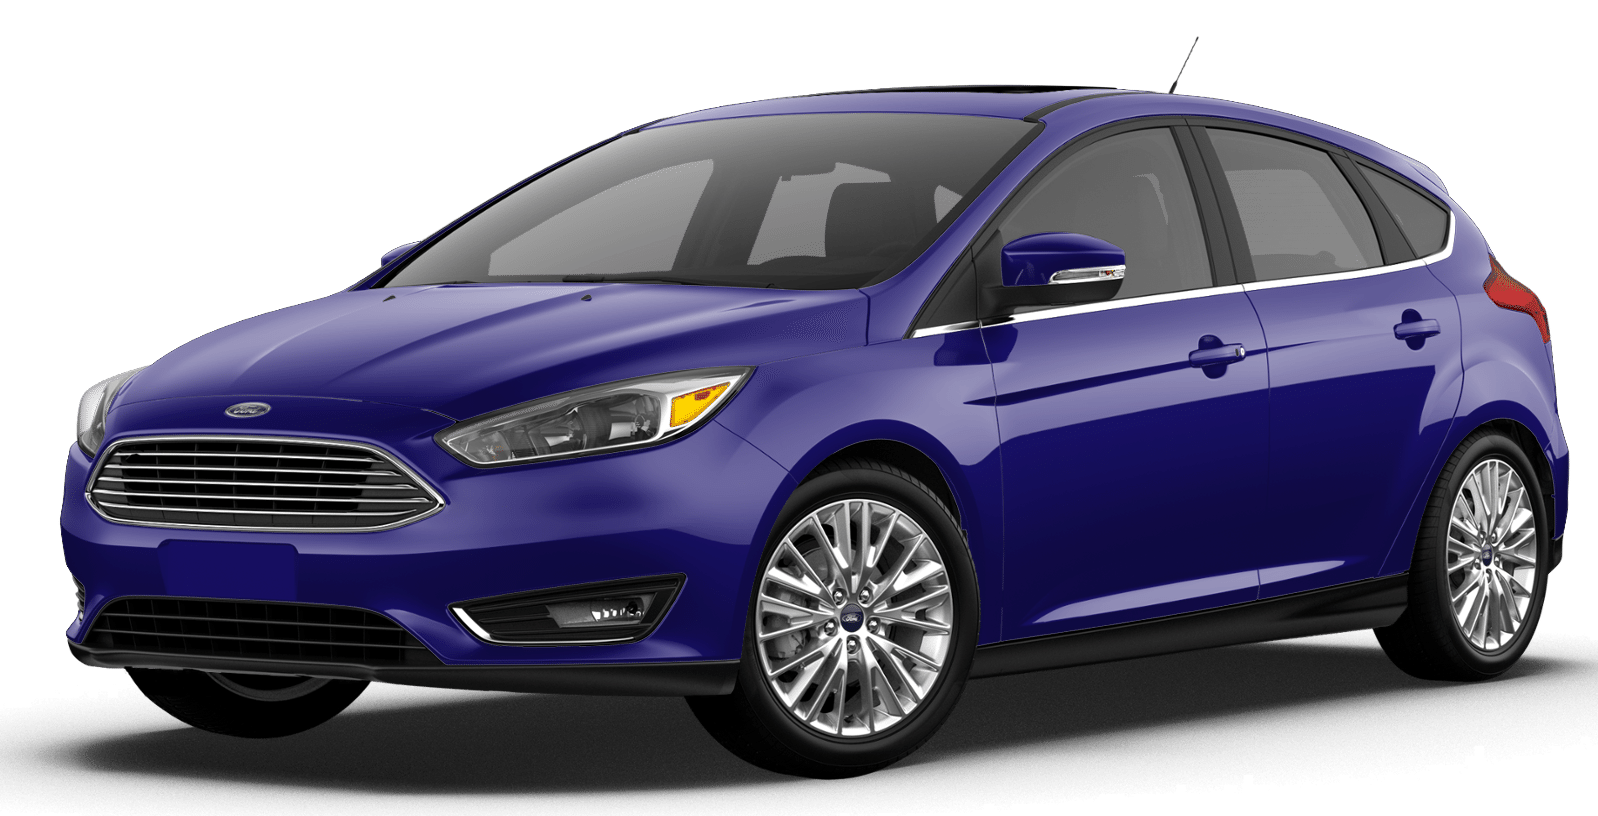 2017 ford focus 2 0l sport price in uae specs review in. Black Bedroom Furniture Sets. Home Design Ideas